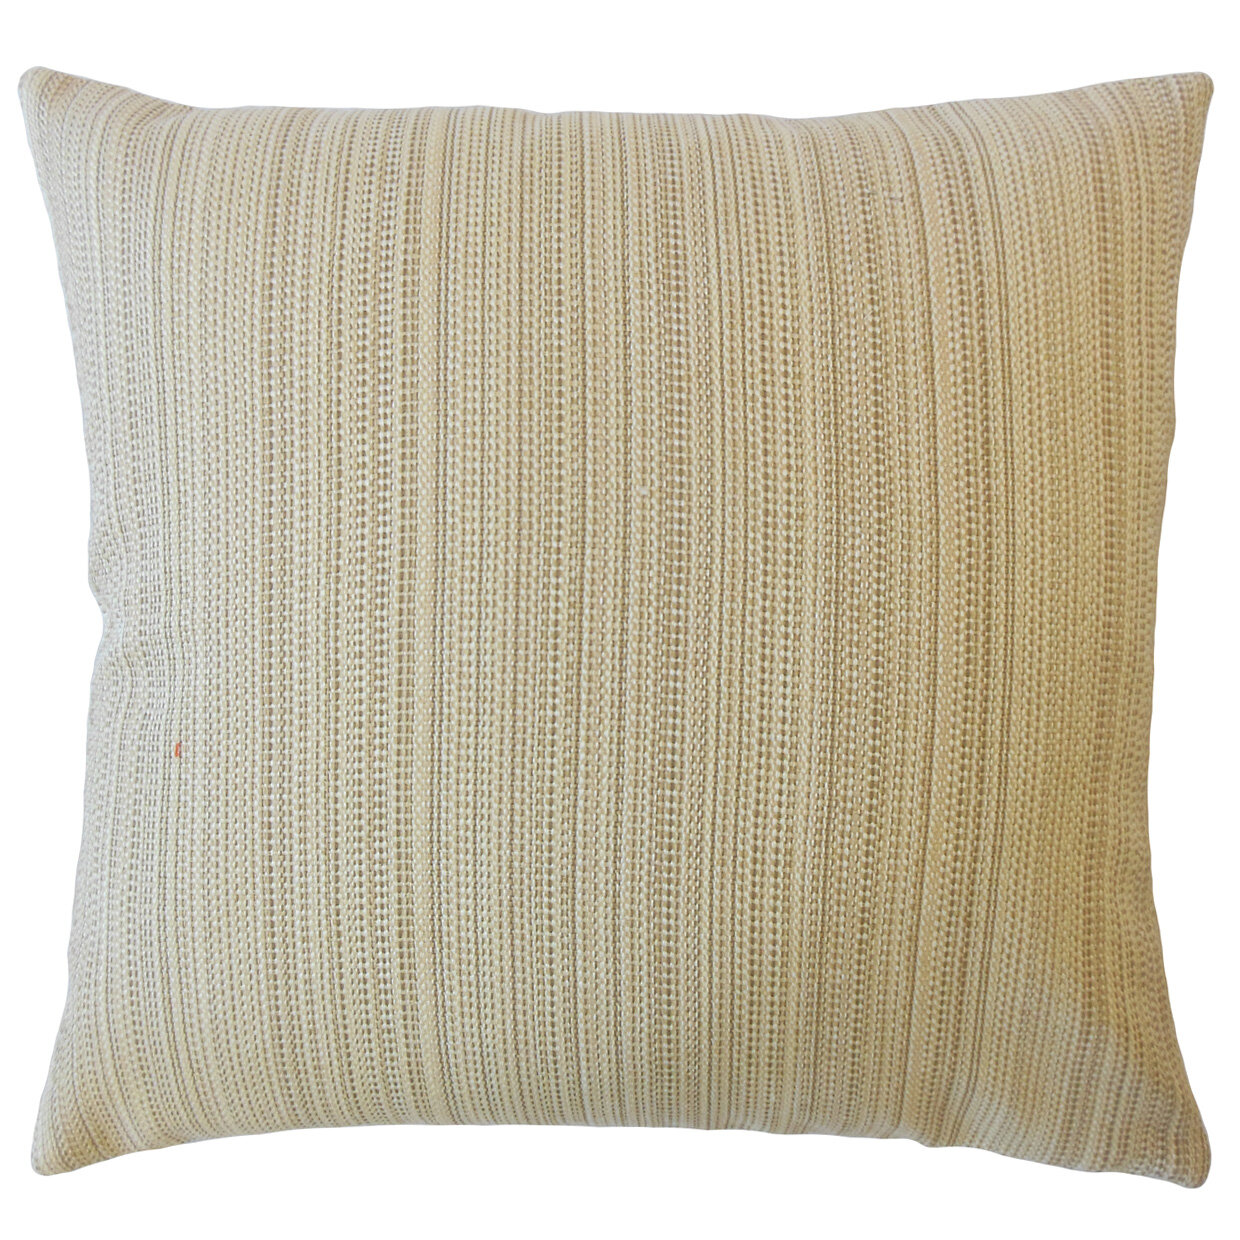 Best Throw Pillow Filling : Rosecliff Heights Hampden Striped Down Filled Throw Pillow Wayfair